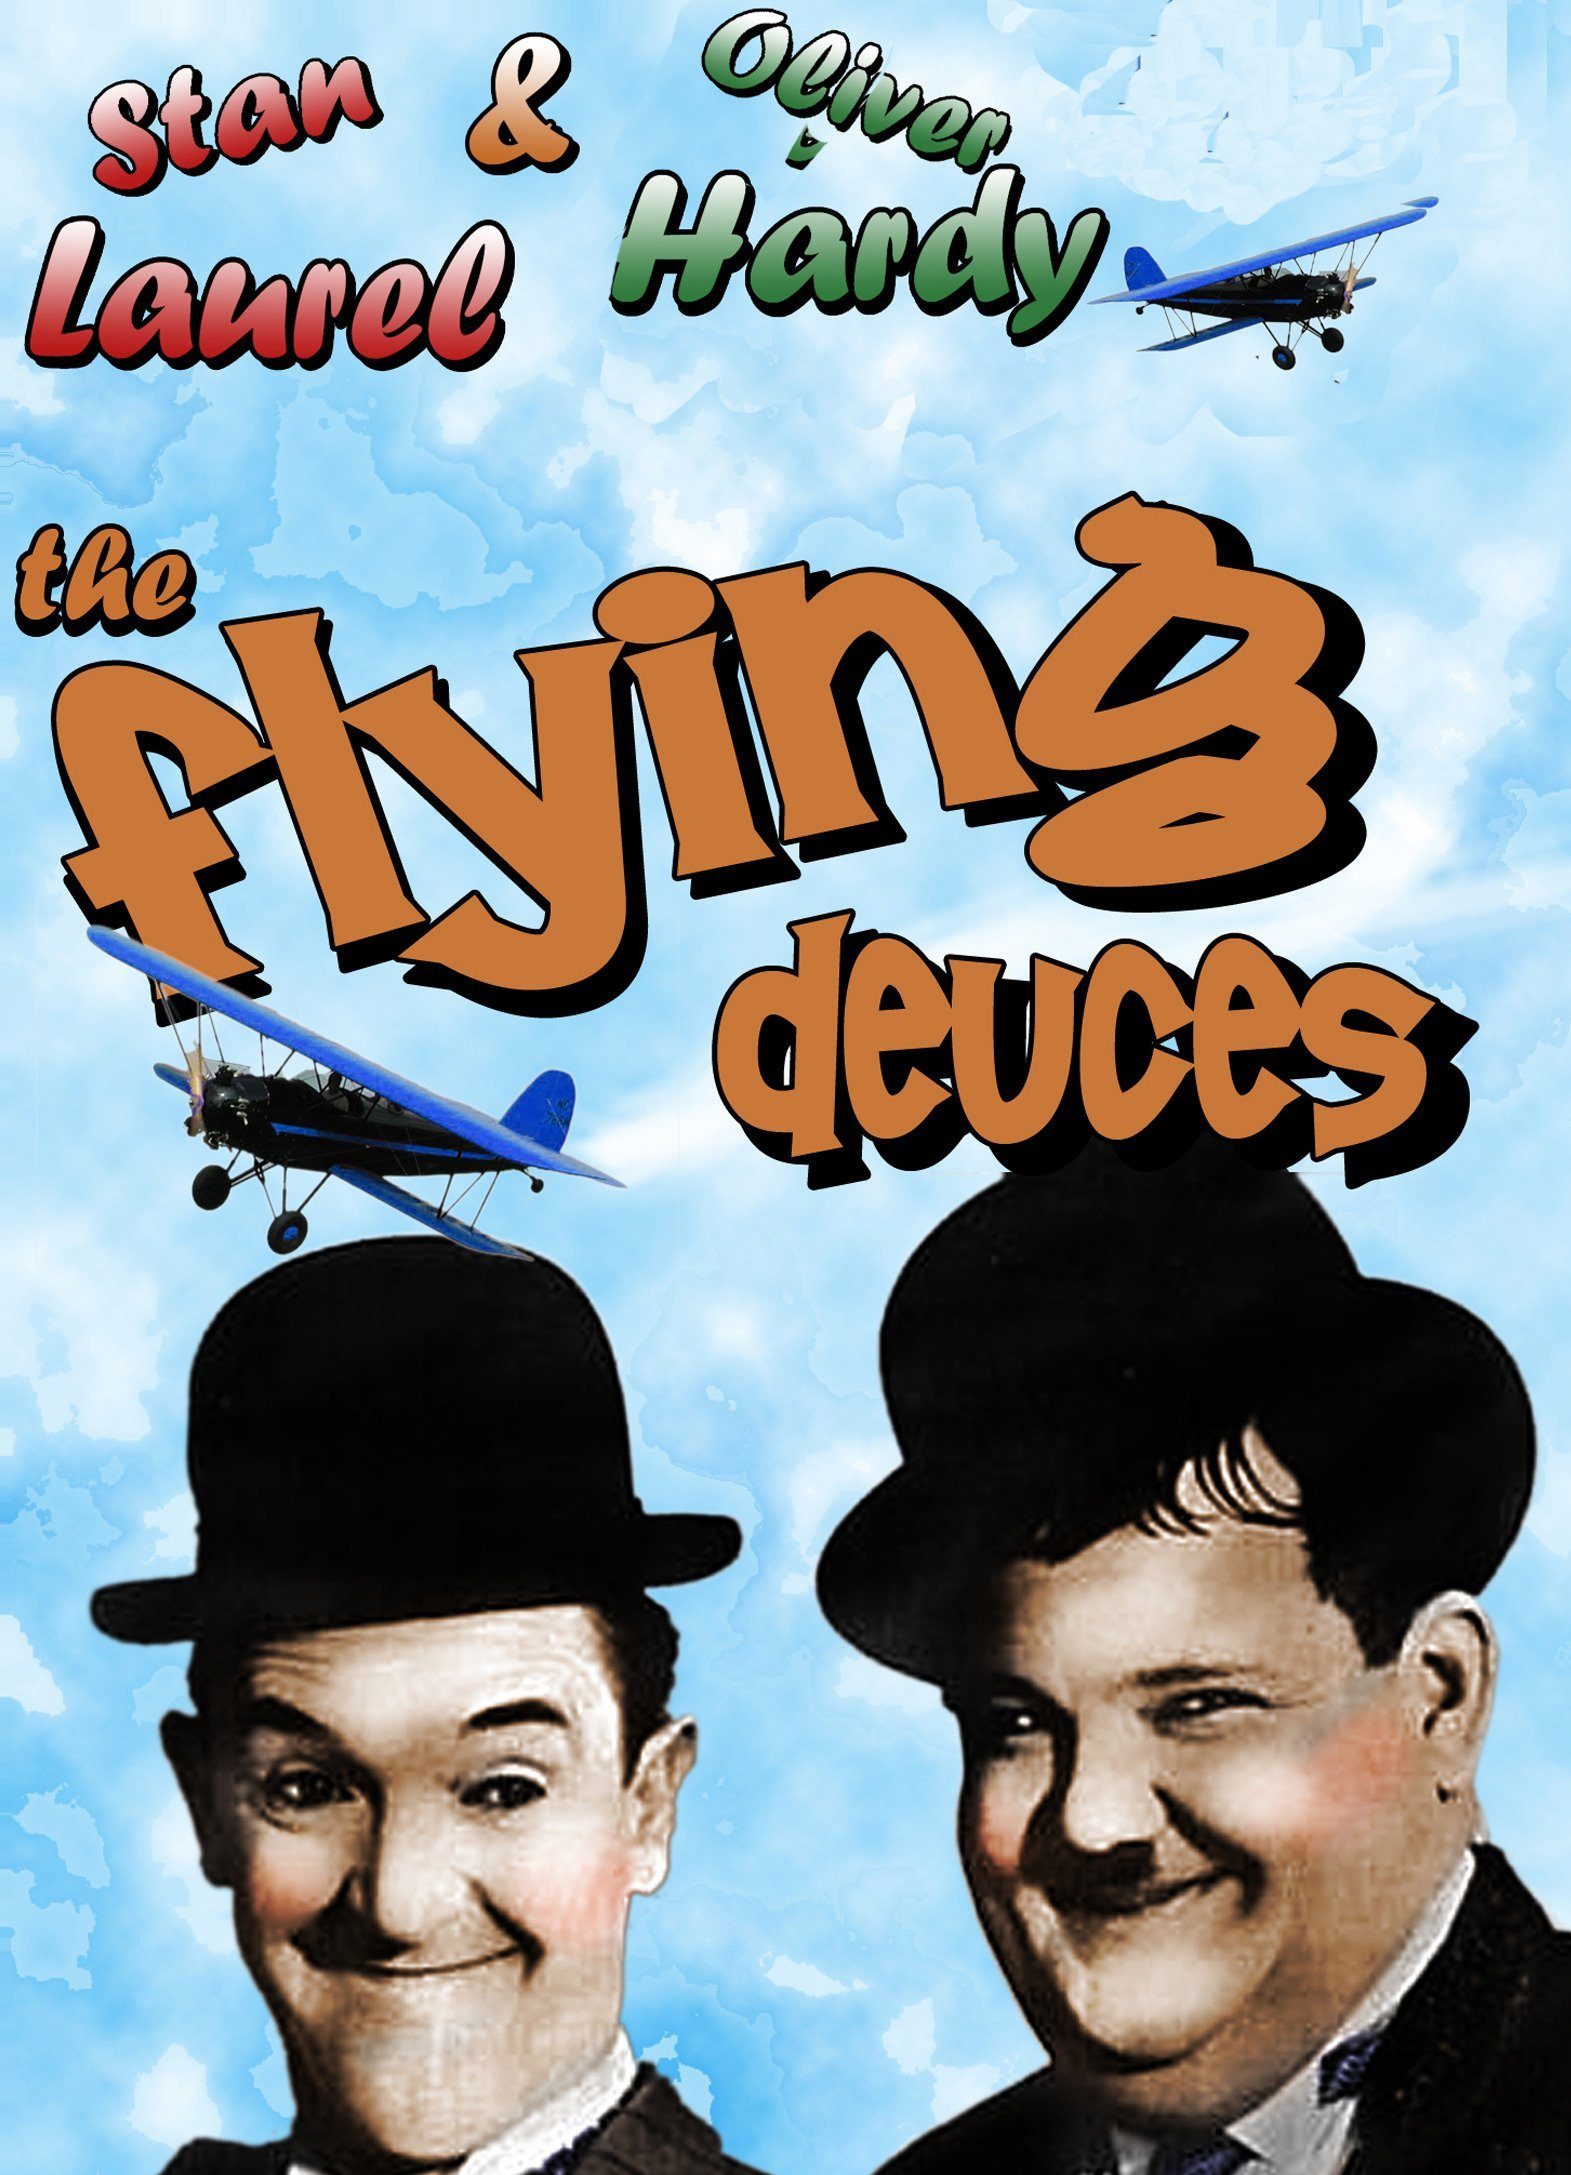 Laurel and Hardy The Flying Deuces (1939)